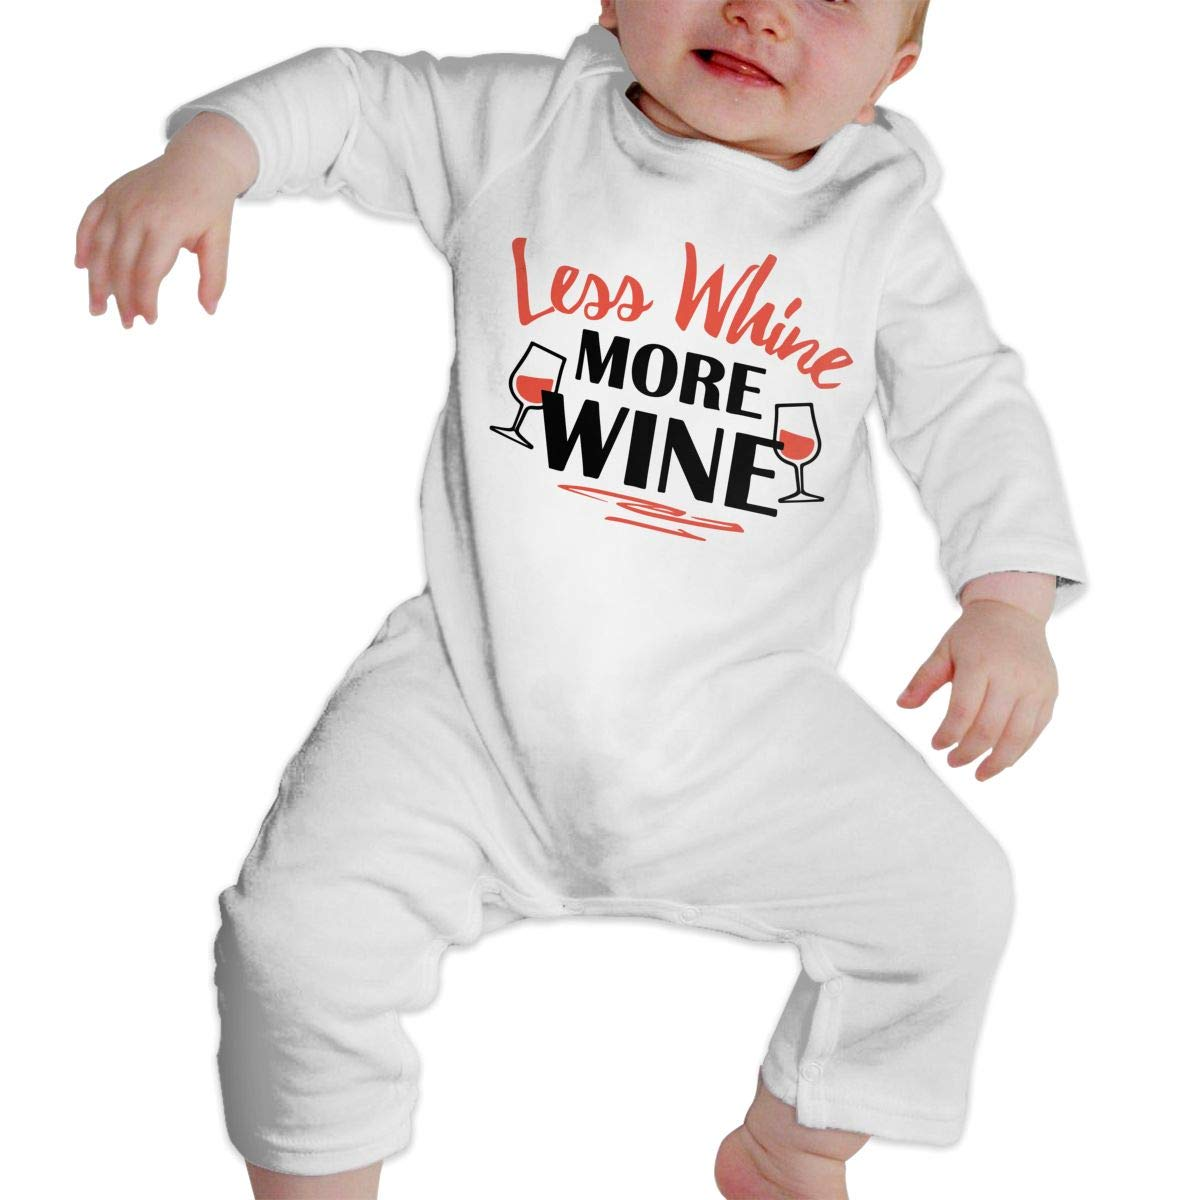 Baby Girls Long Sleeved Coveralls Less Whine More Wine-1 Infant Long Sleeve Romper Jumpsuit